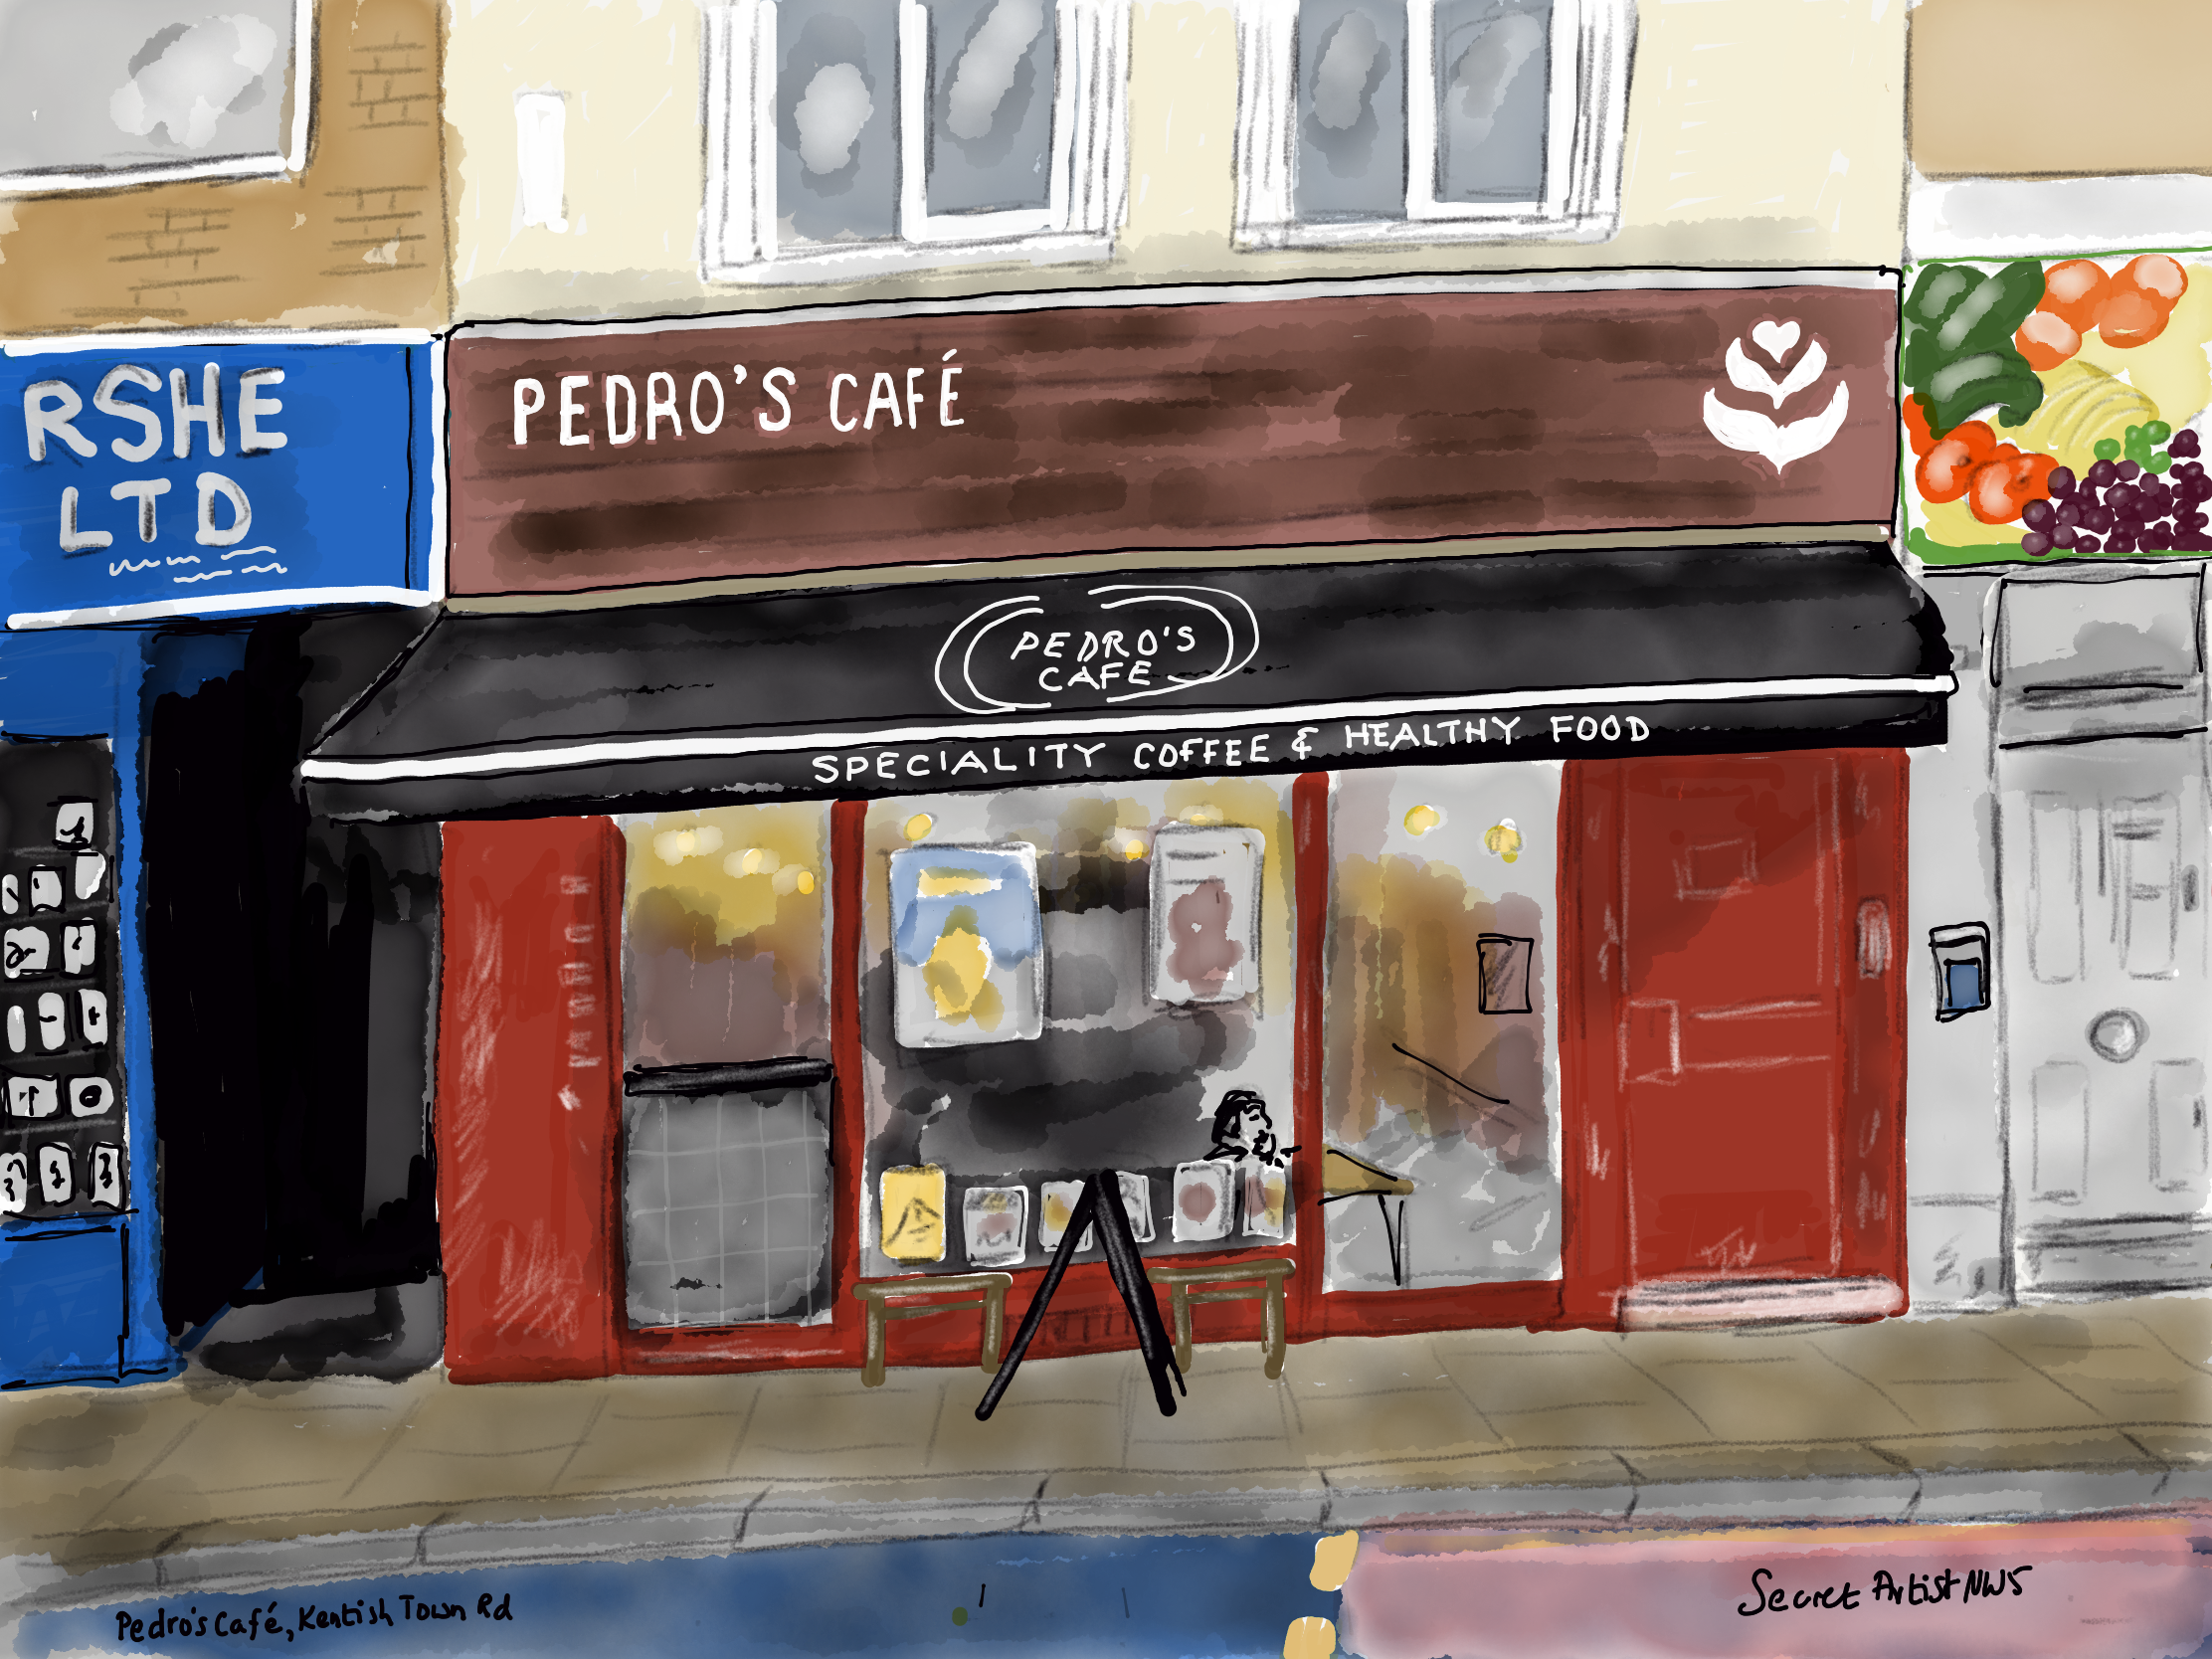 Pedro's Cafe new look